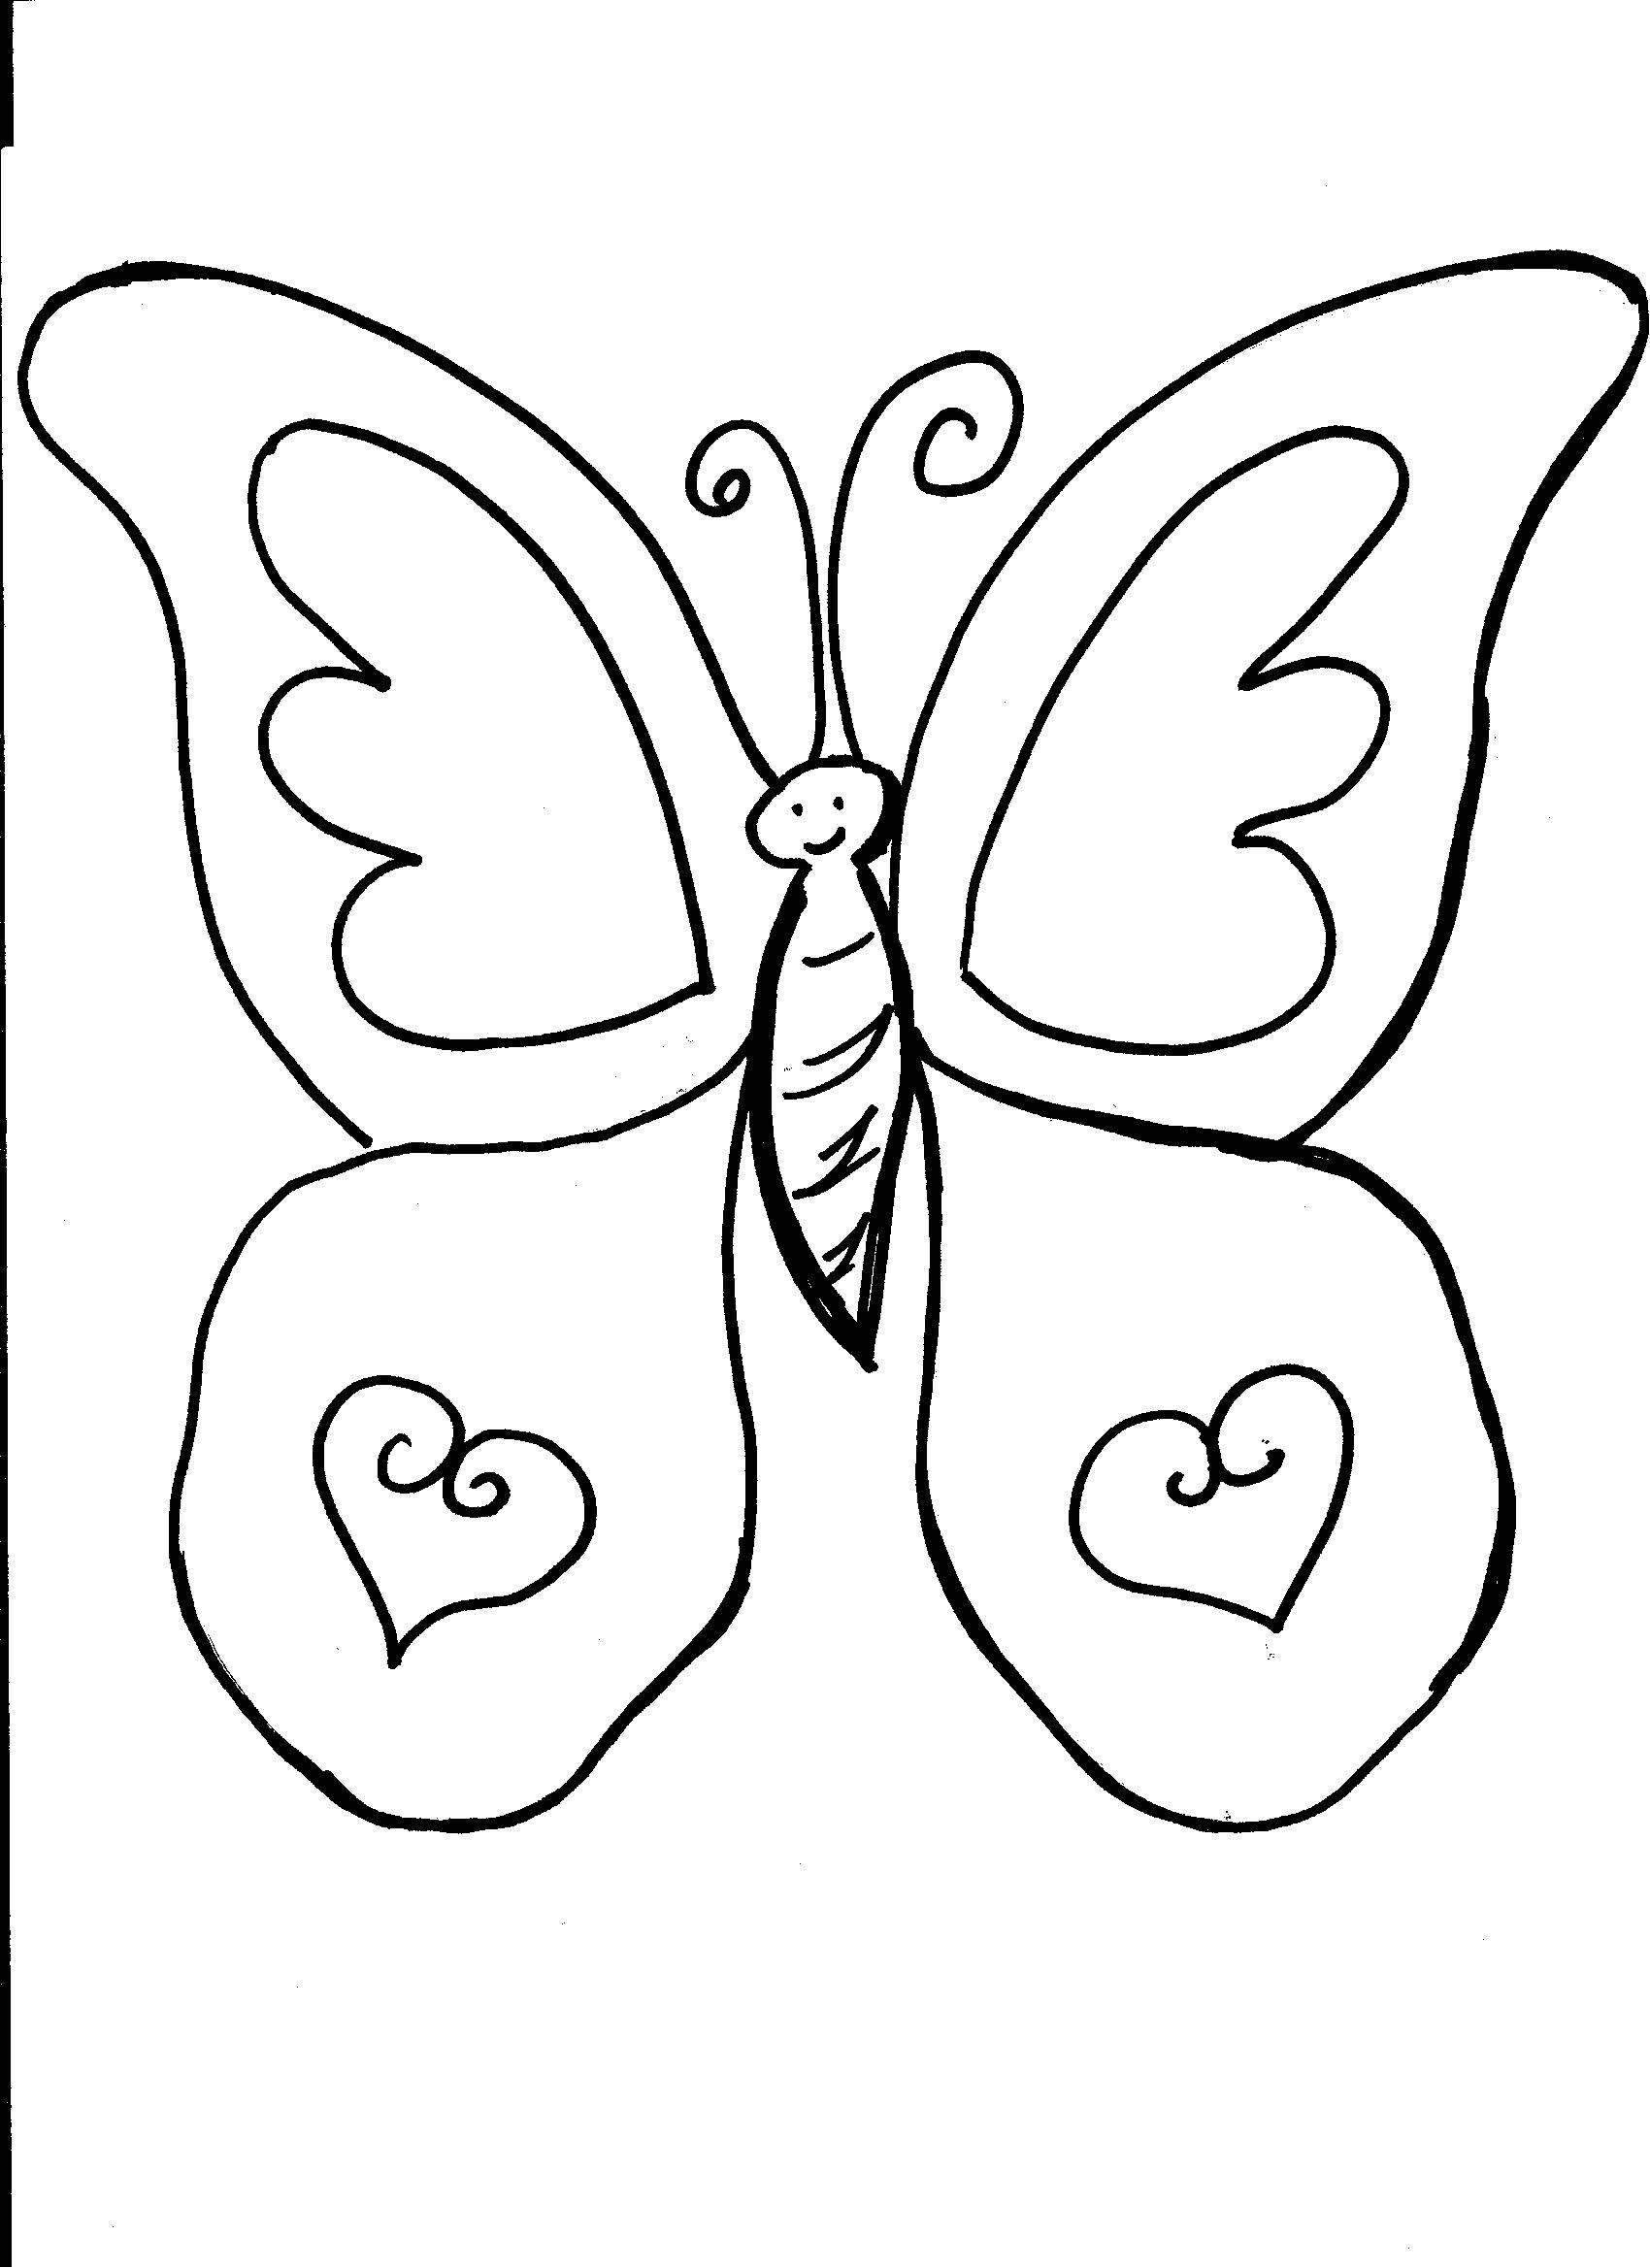 coloring pages butterflies - photo#35